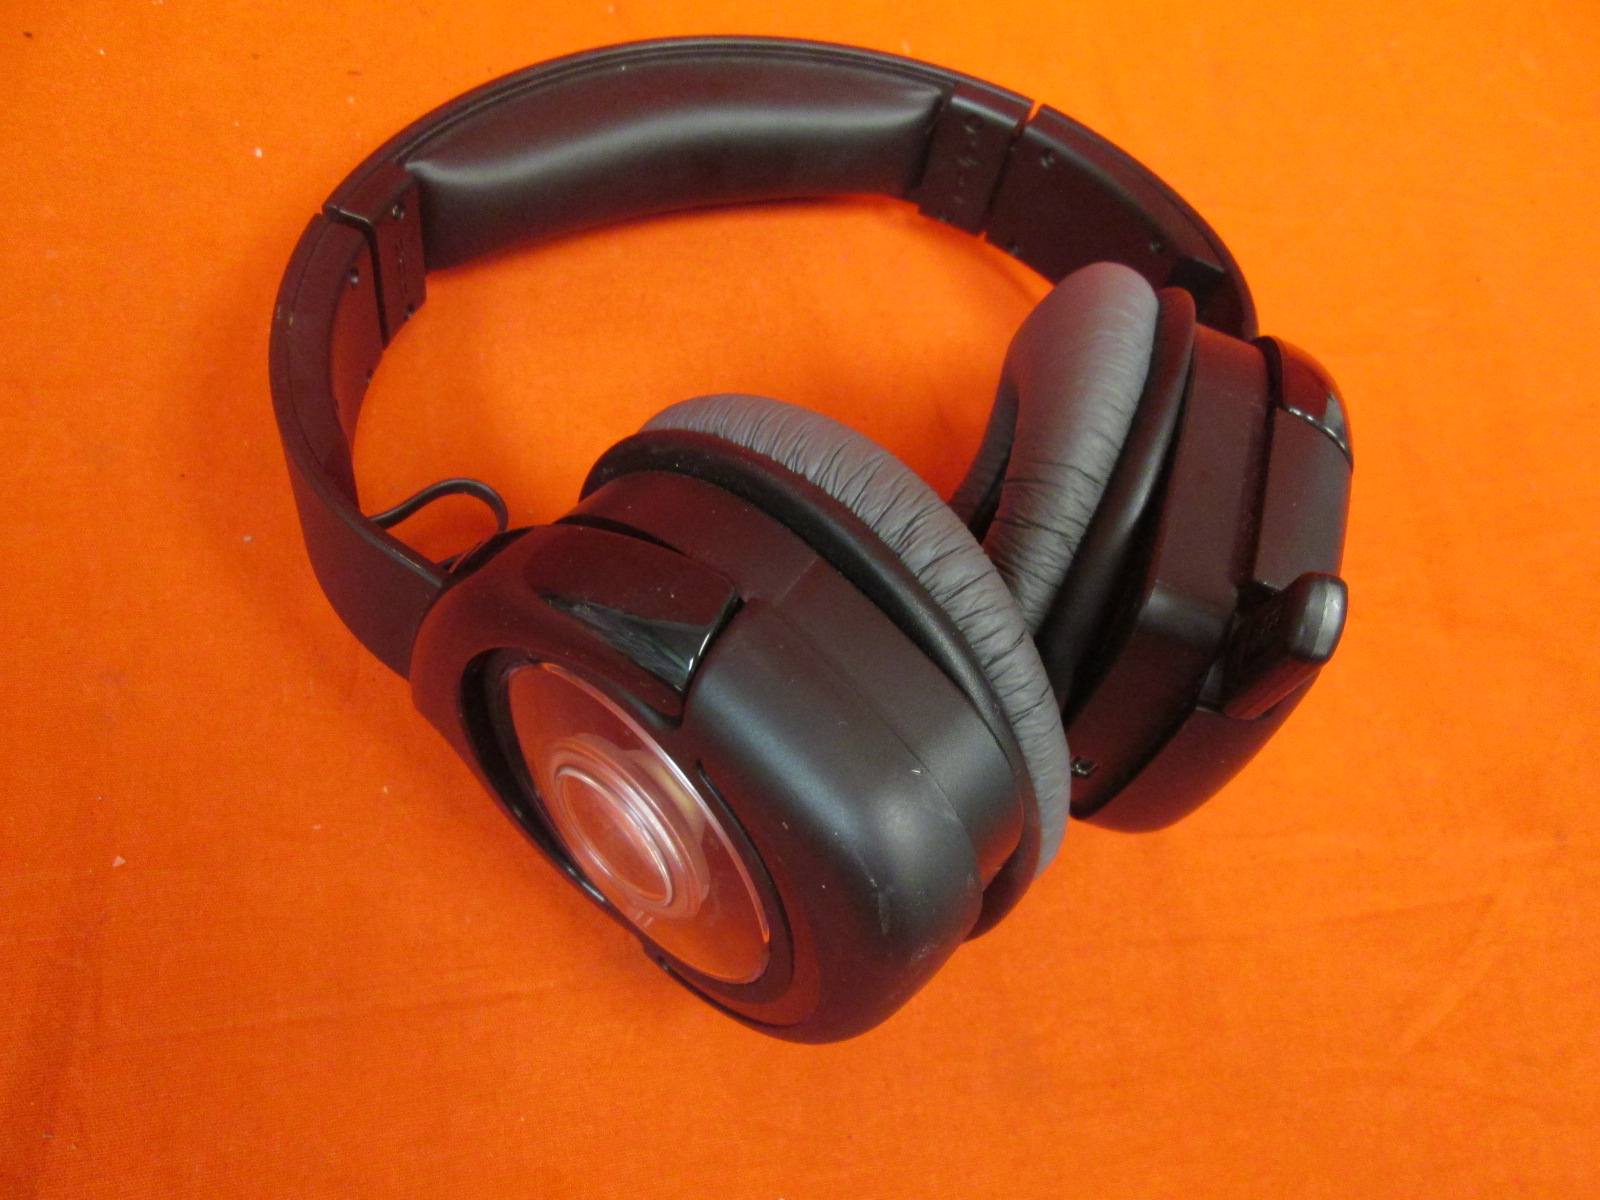 PDP Afterglow Prismatic True Wireless Headset Incomplete